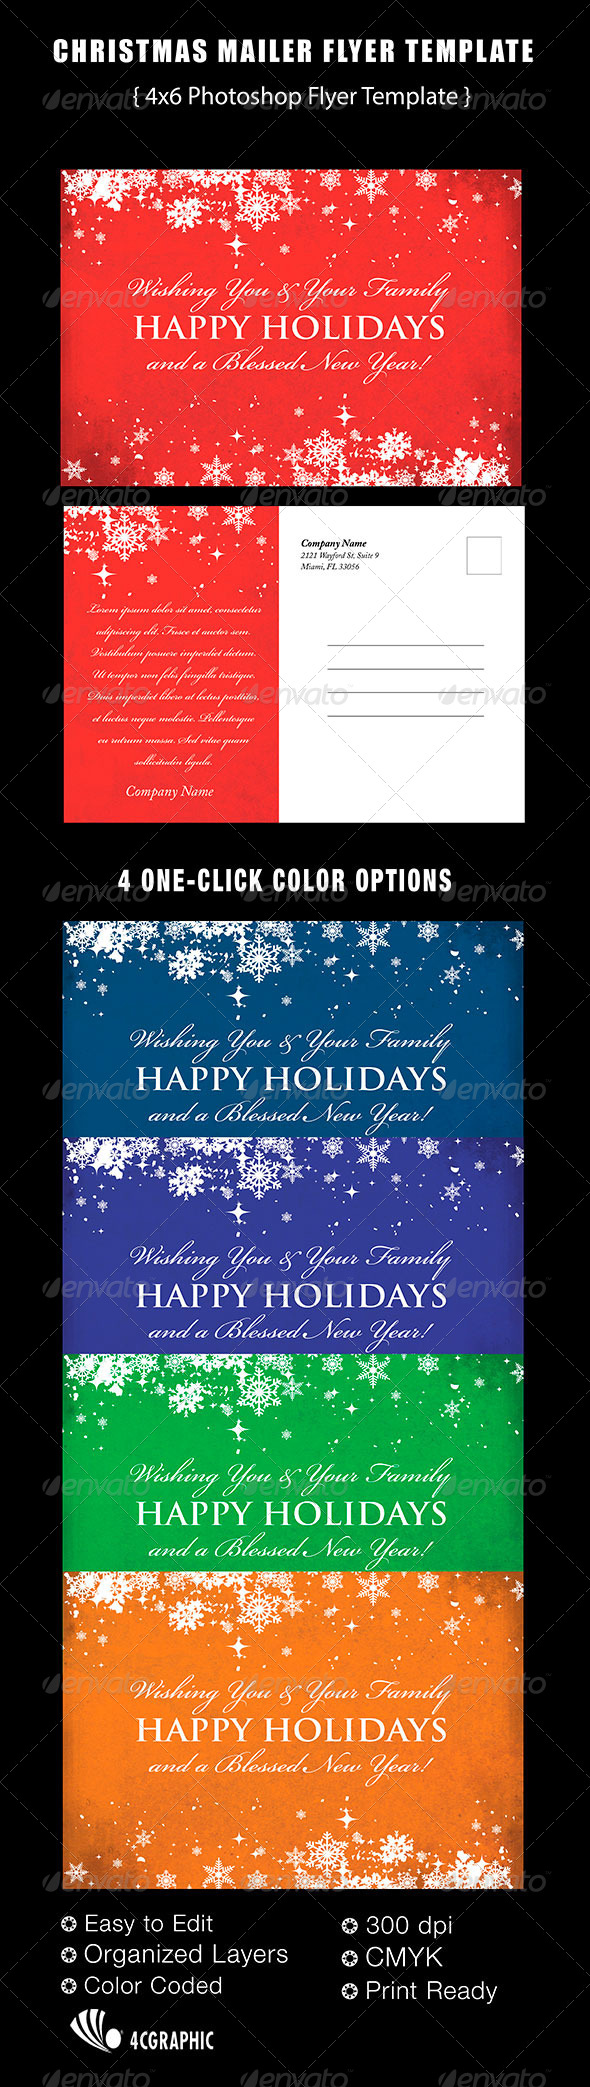 GraphicRiver Christmas Mailer Flyer Template 6151058